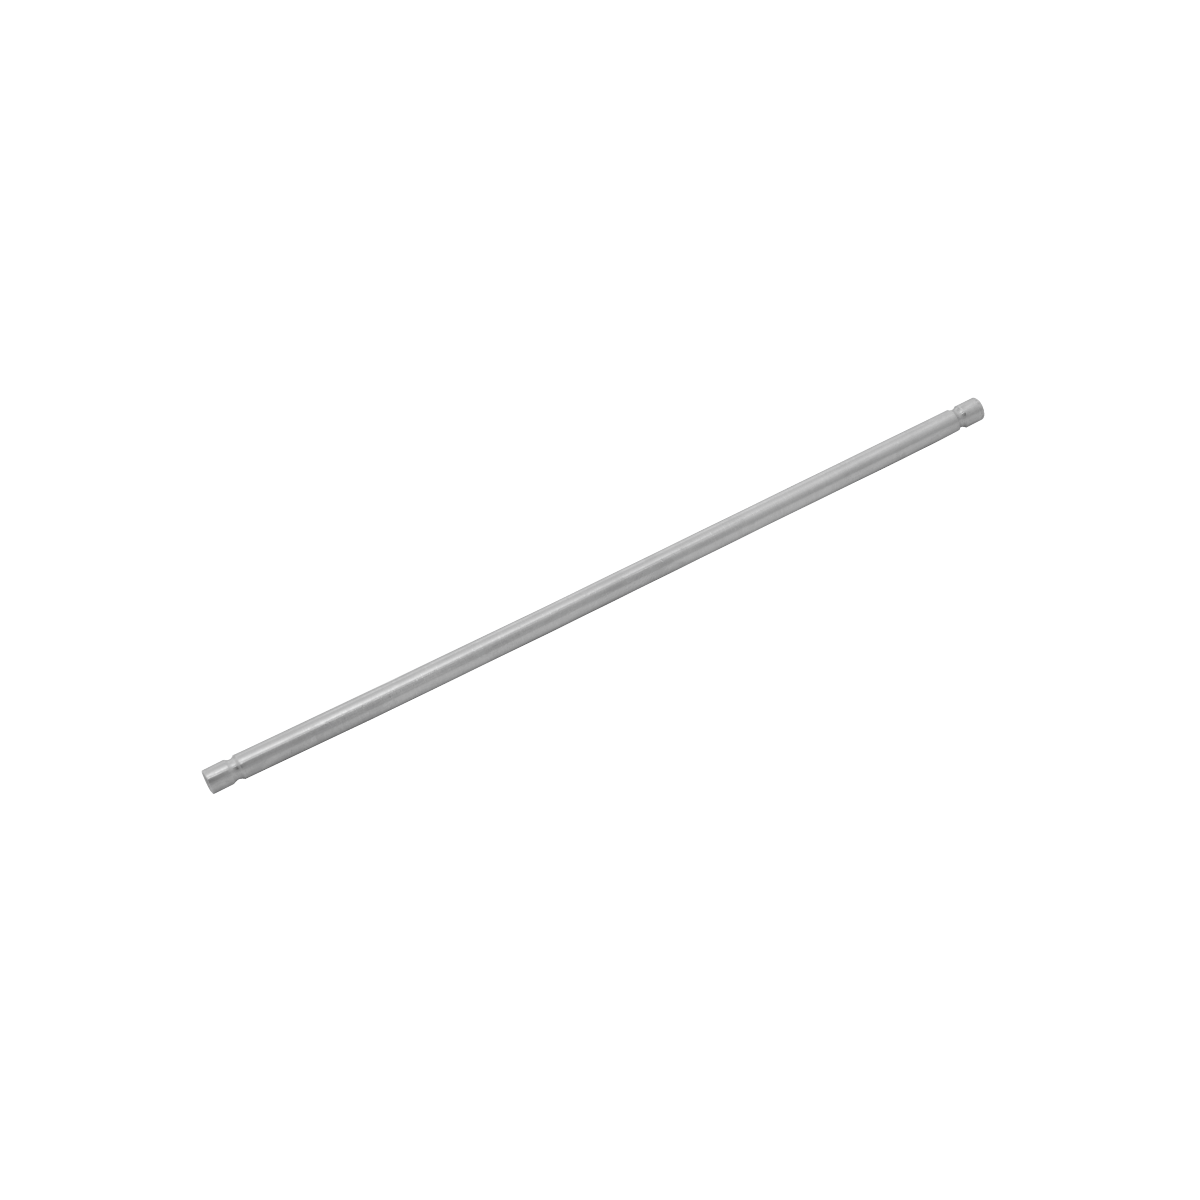 Tubular Rod 6.0mm Dia